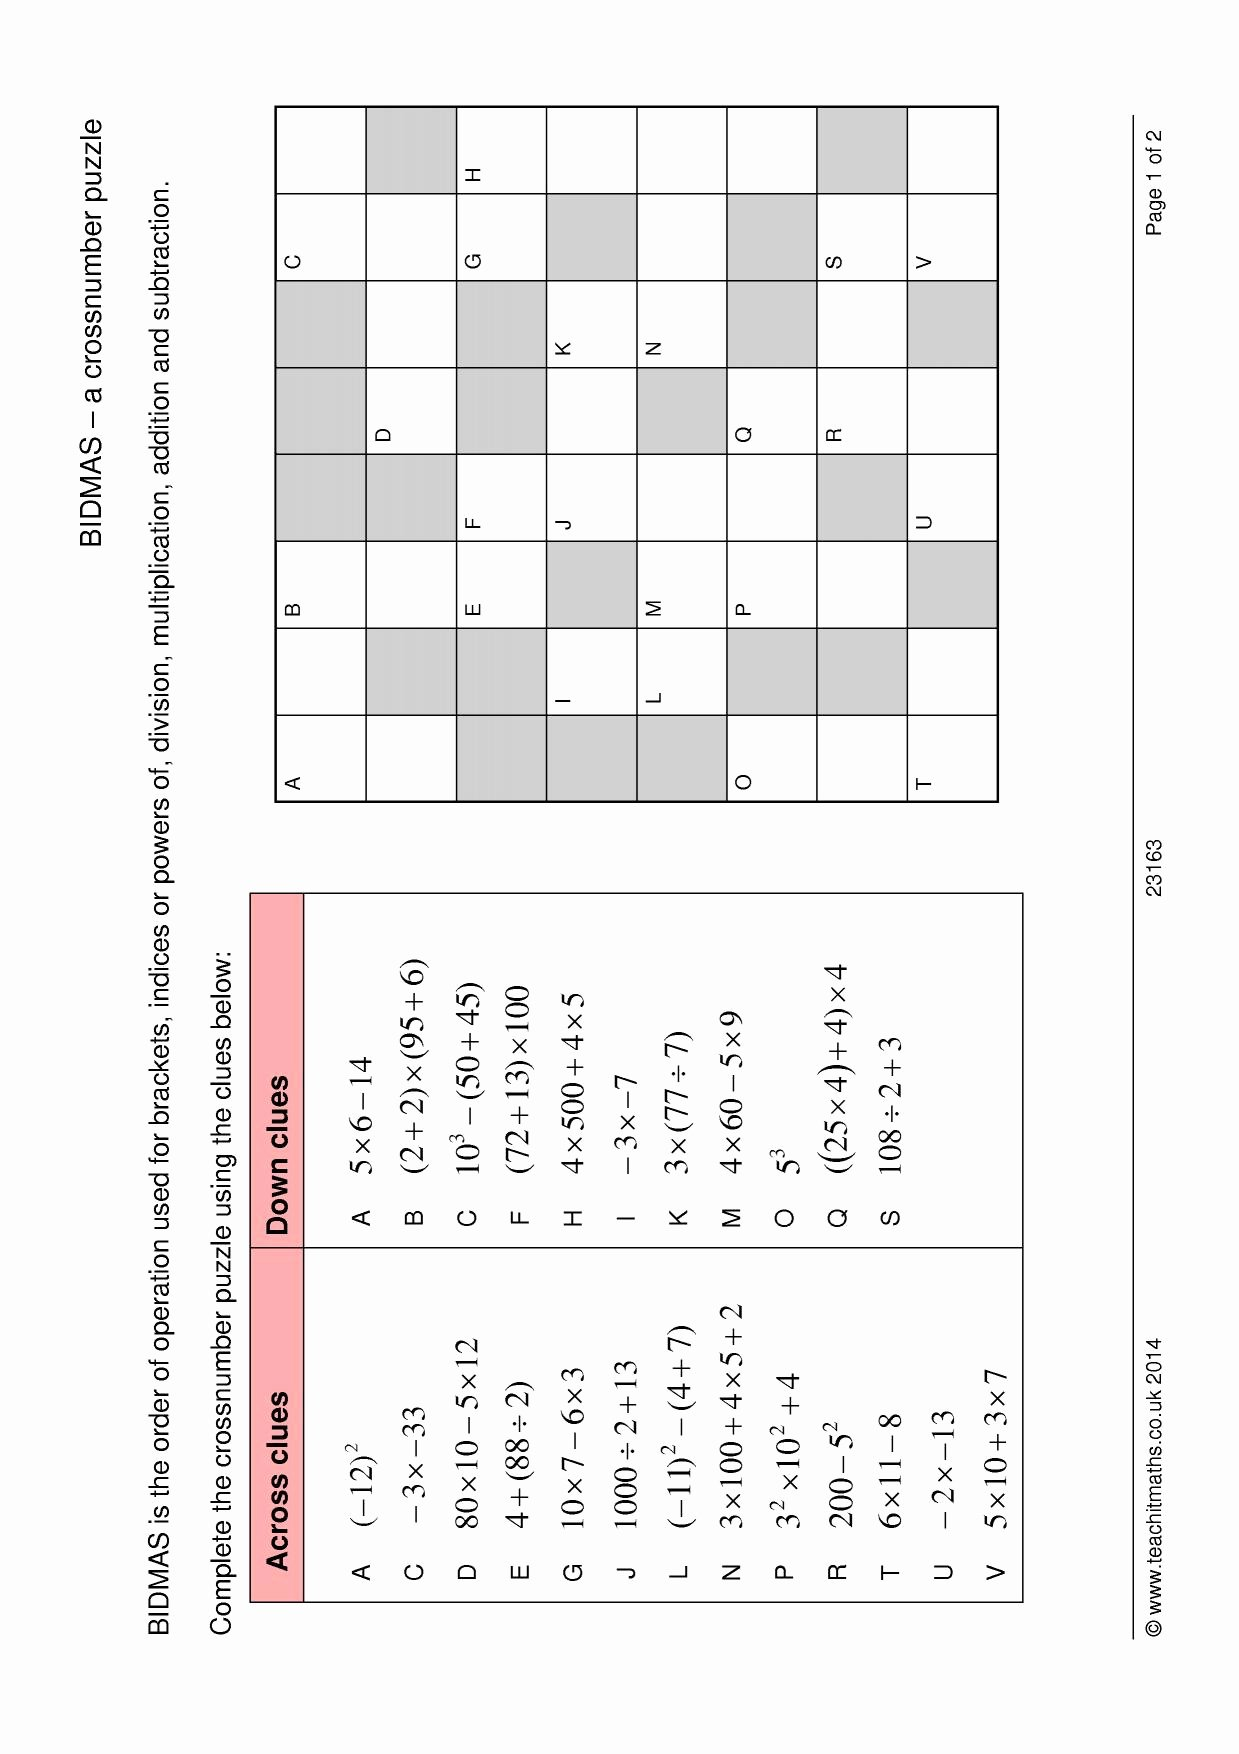 Order Of Operations Puzzle Worksheet New Bidmas – A Crossnumber Puzzle Number order Of